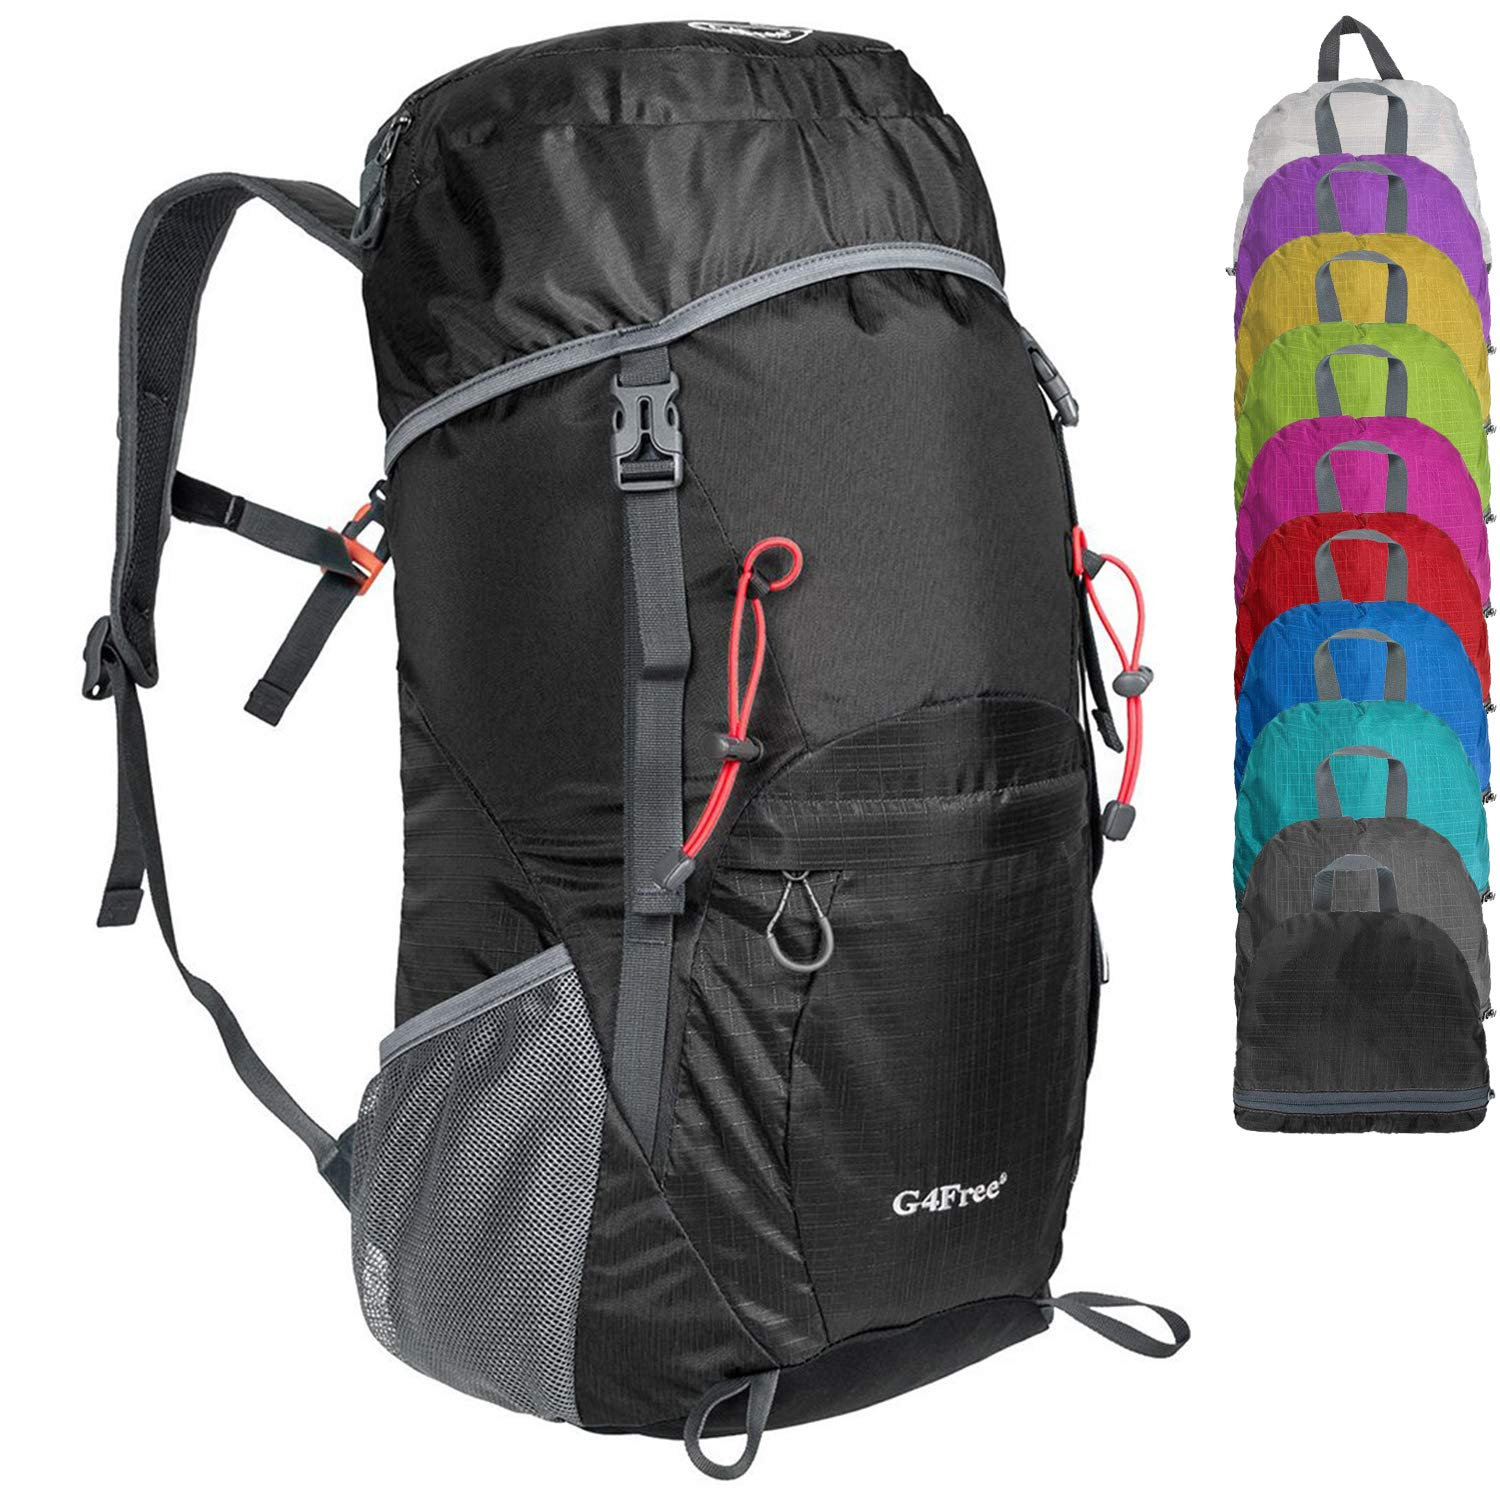 c2169390adec G4Free Lightweight Packable Water Resistant Large 40L Travel Hiking  Backpack Daypack Foldable